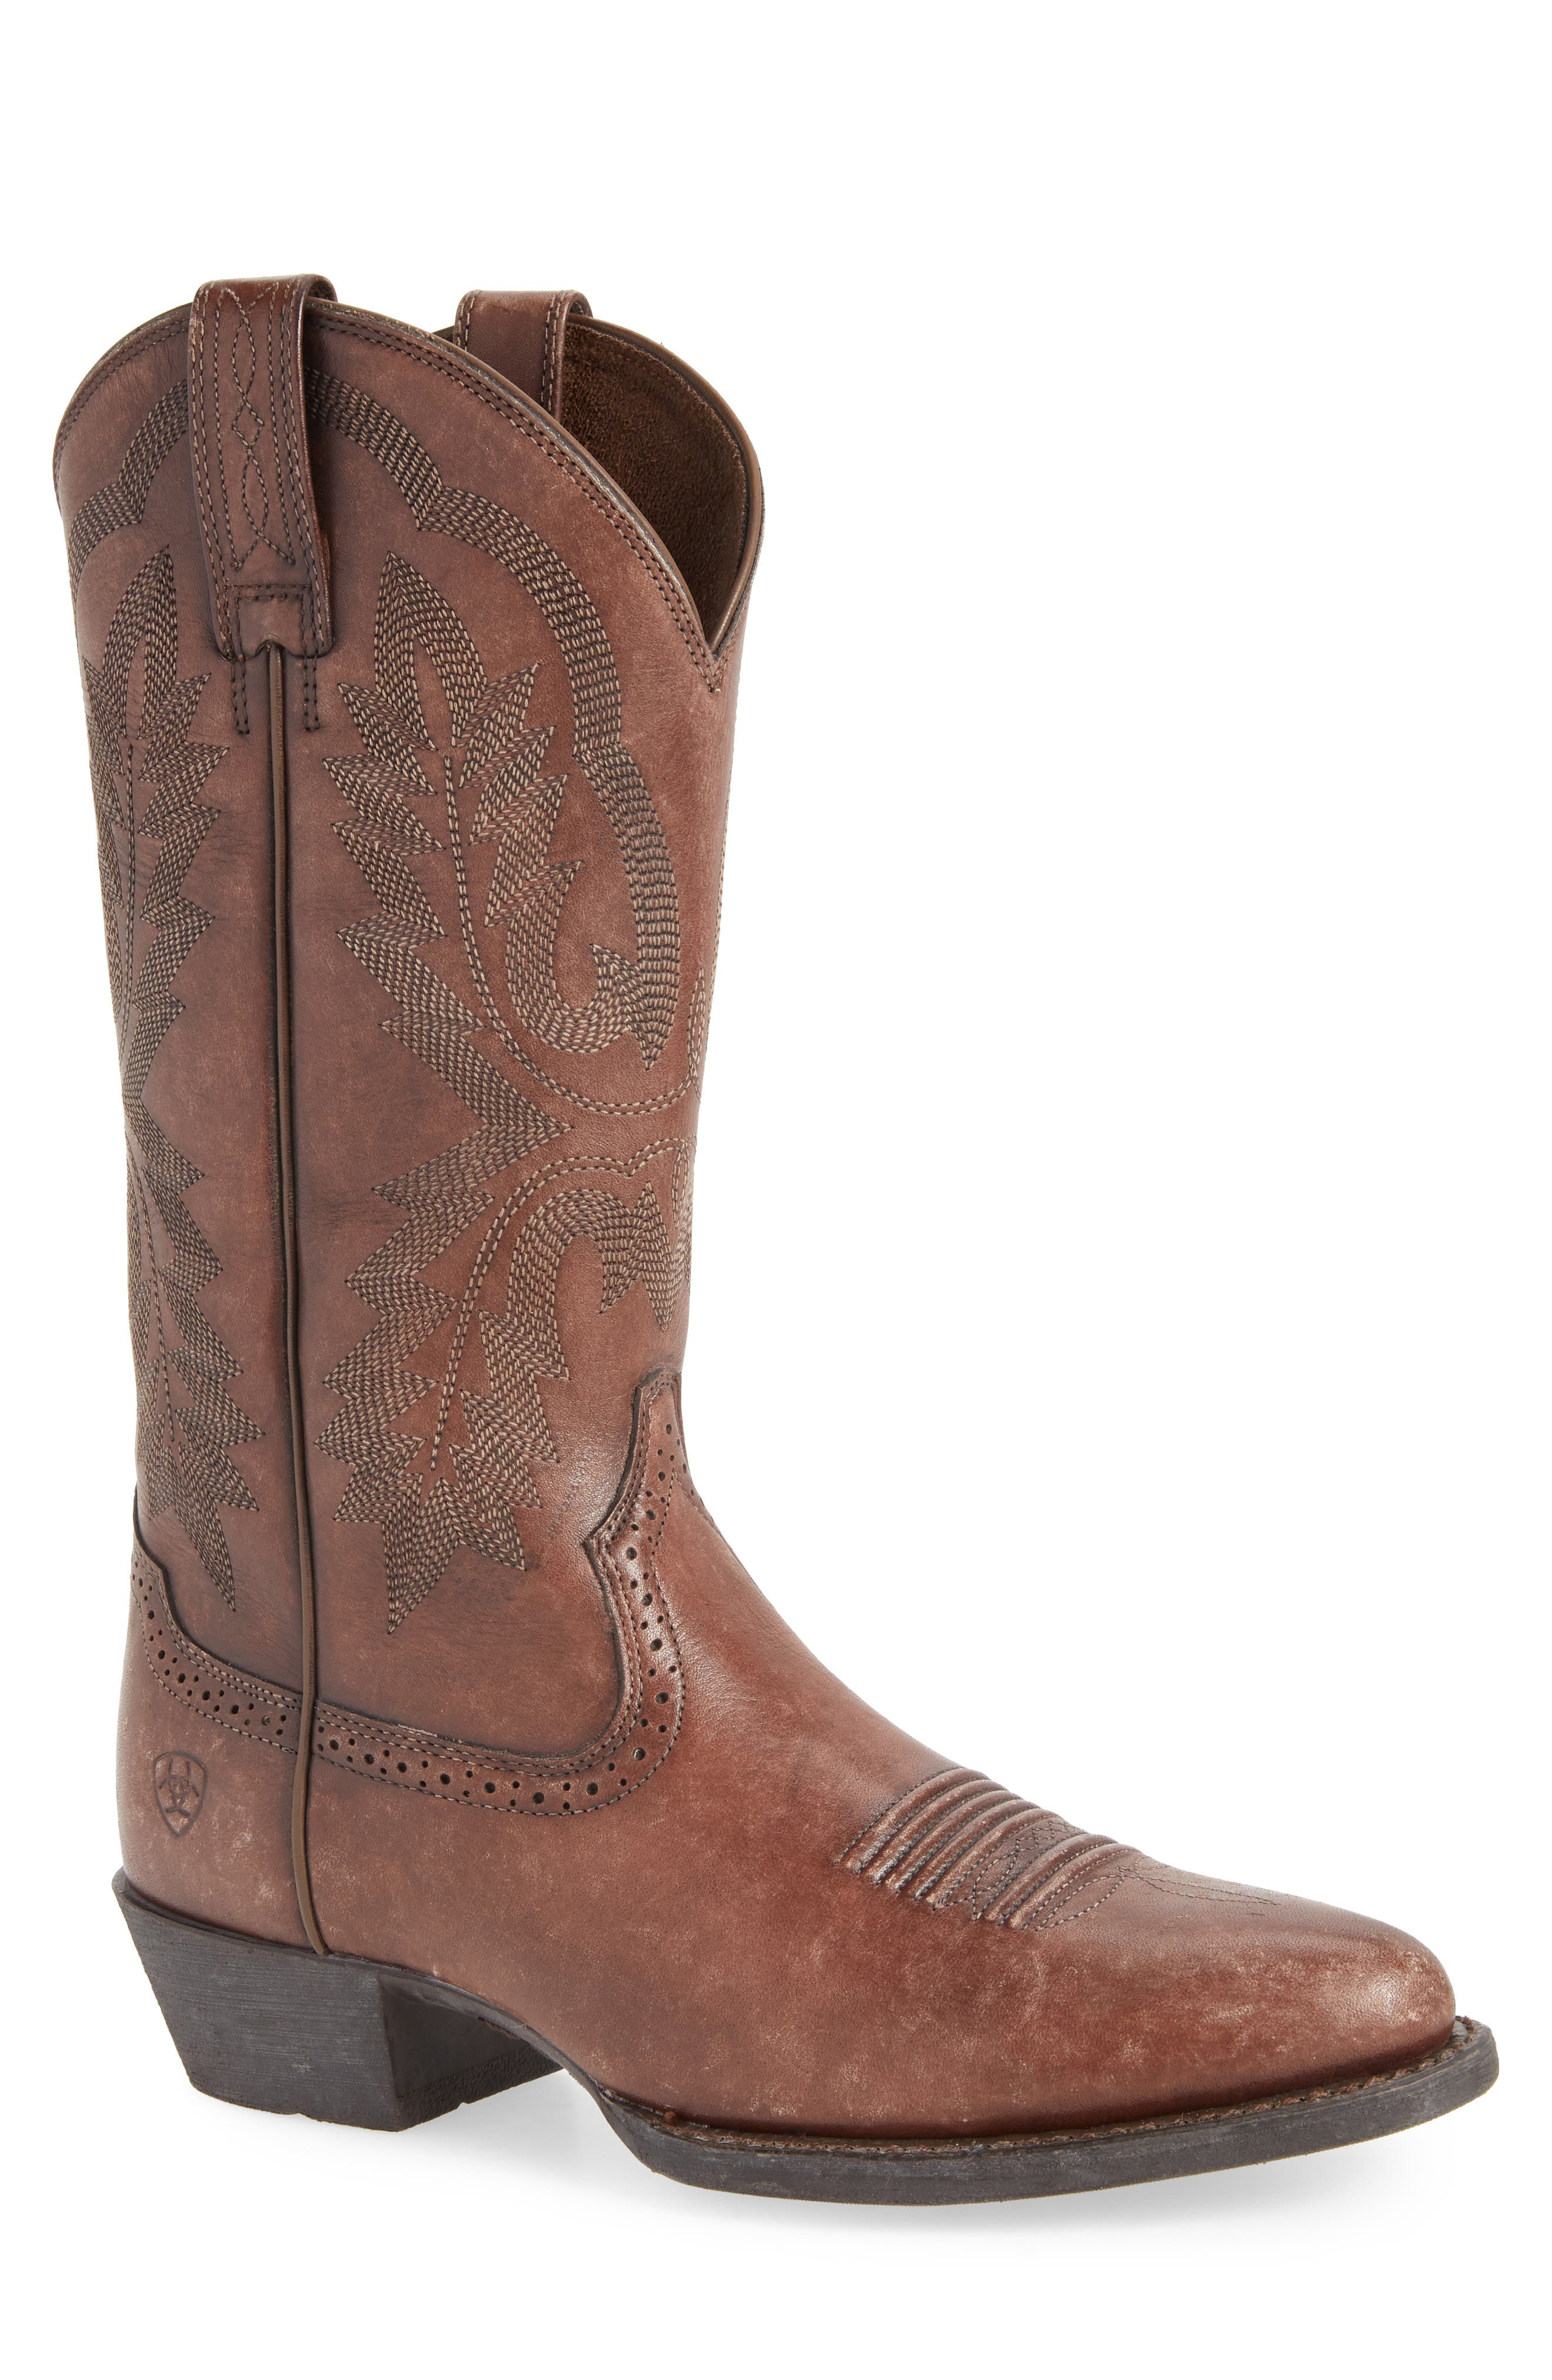 Heritage Calhoun Western R-Toe Boot,                             Main thumbnail 1, color,                             Natural Brown Leather